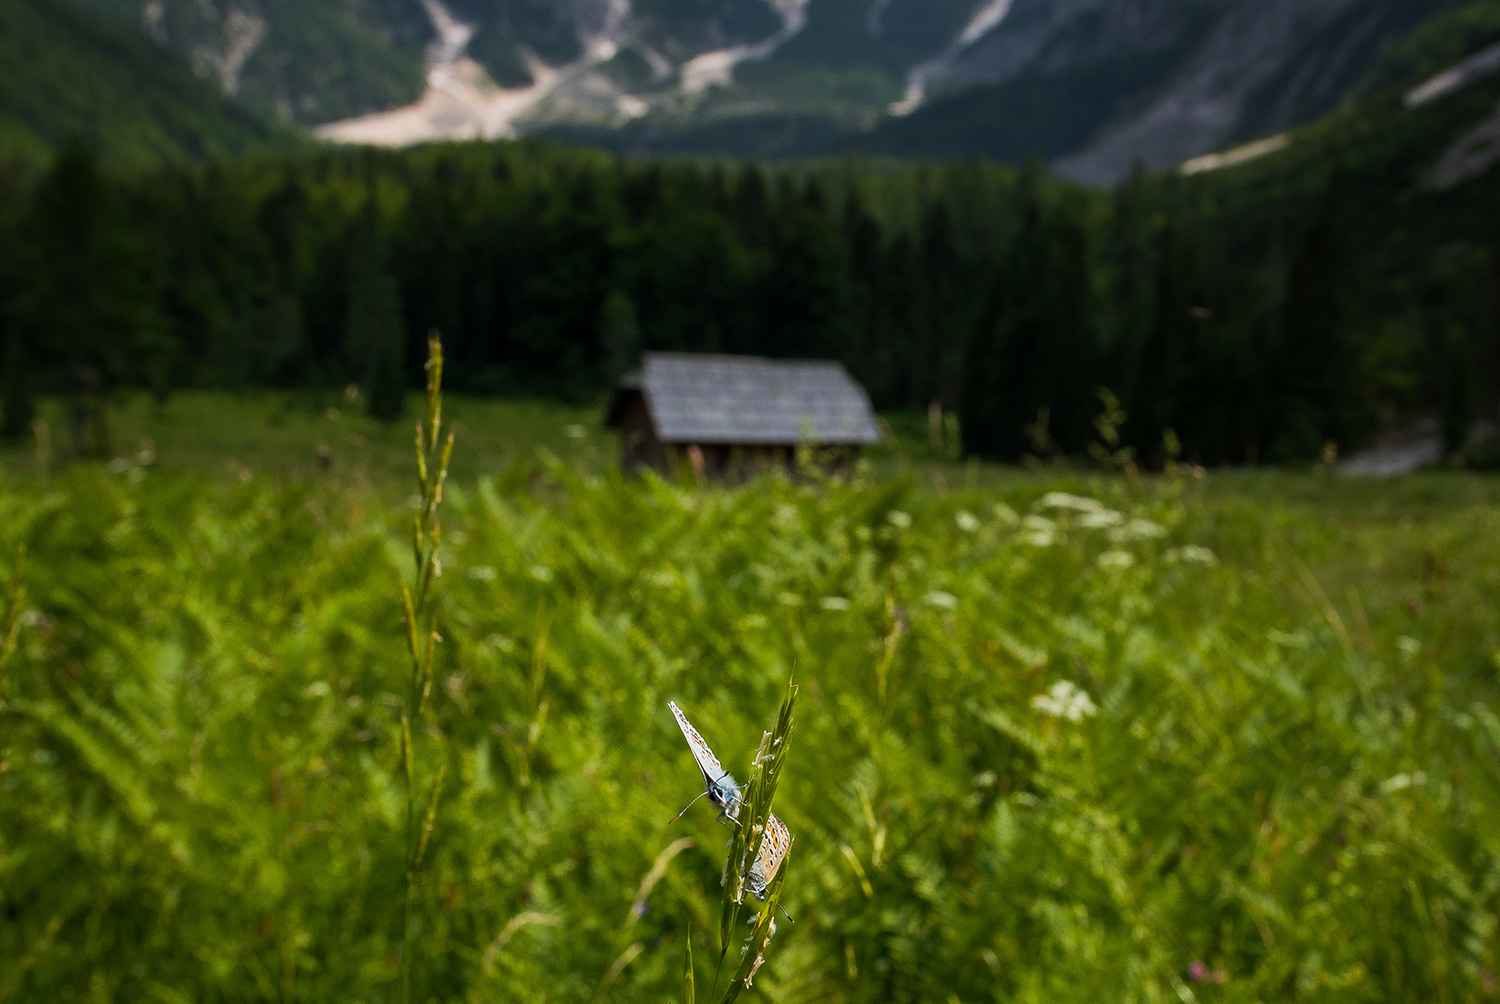 Cottage and butterfly in the Krnica valley example image 1